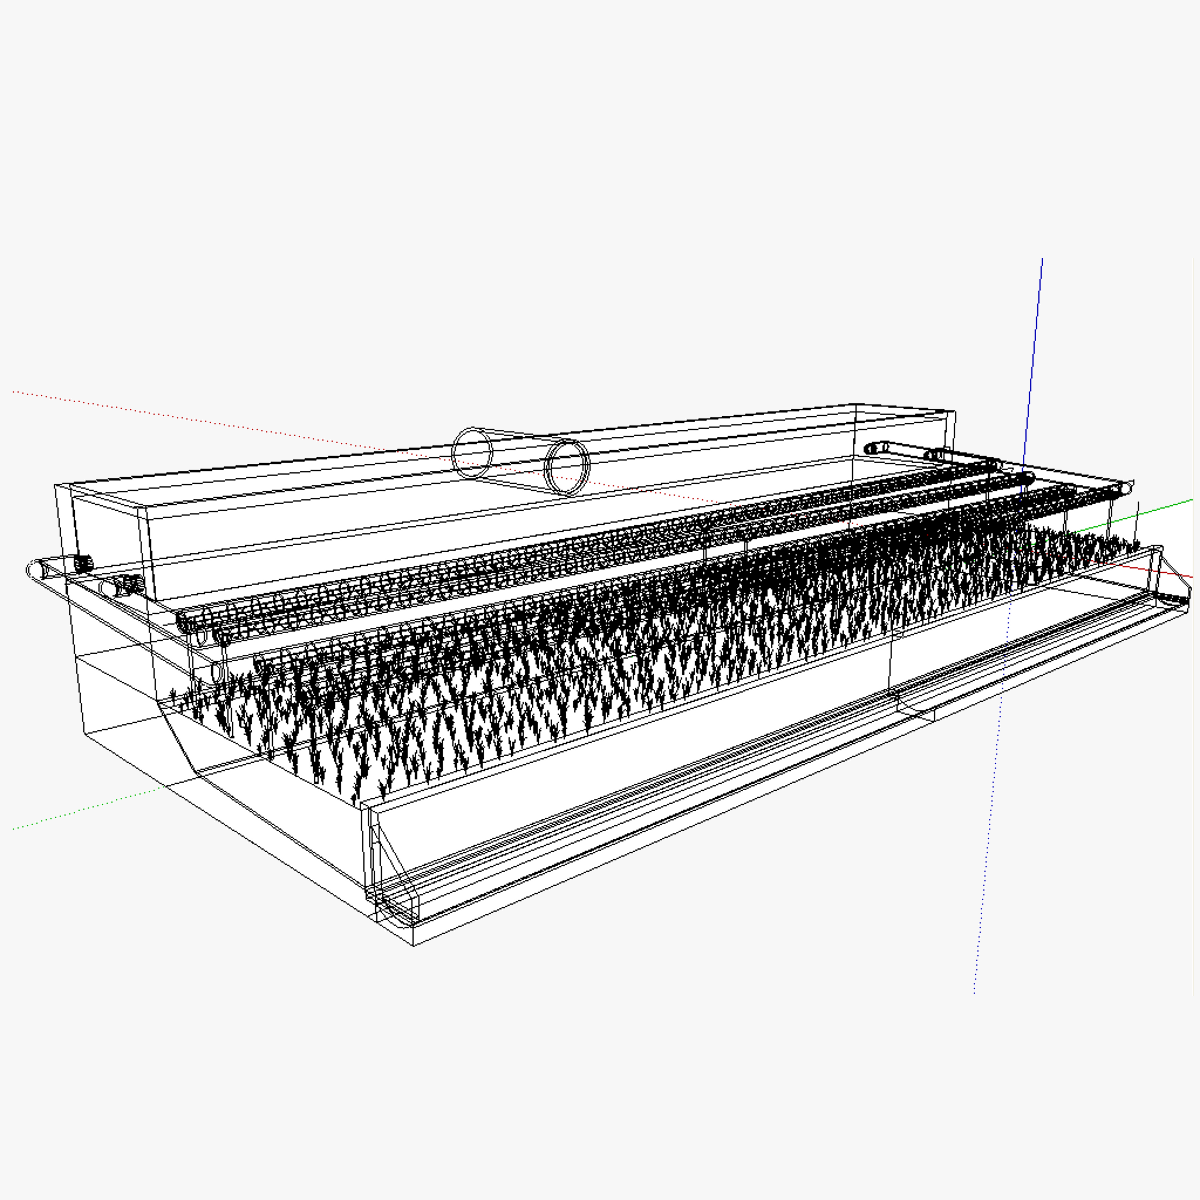 Mechanical Systems Drawing together with Fuelsystem furthermore Conveyors also 5031 in addition At Vertical Flow Reedbed. on gravity powered water pump